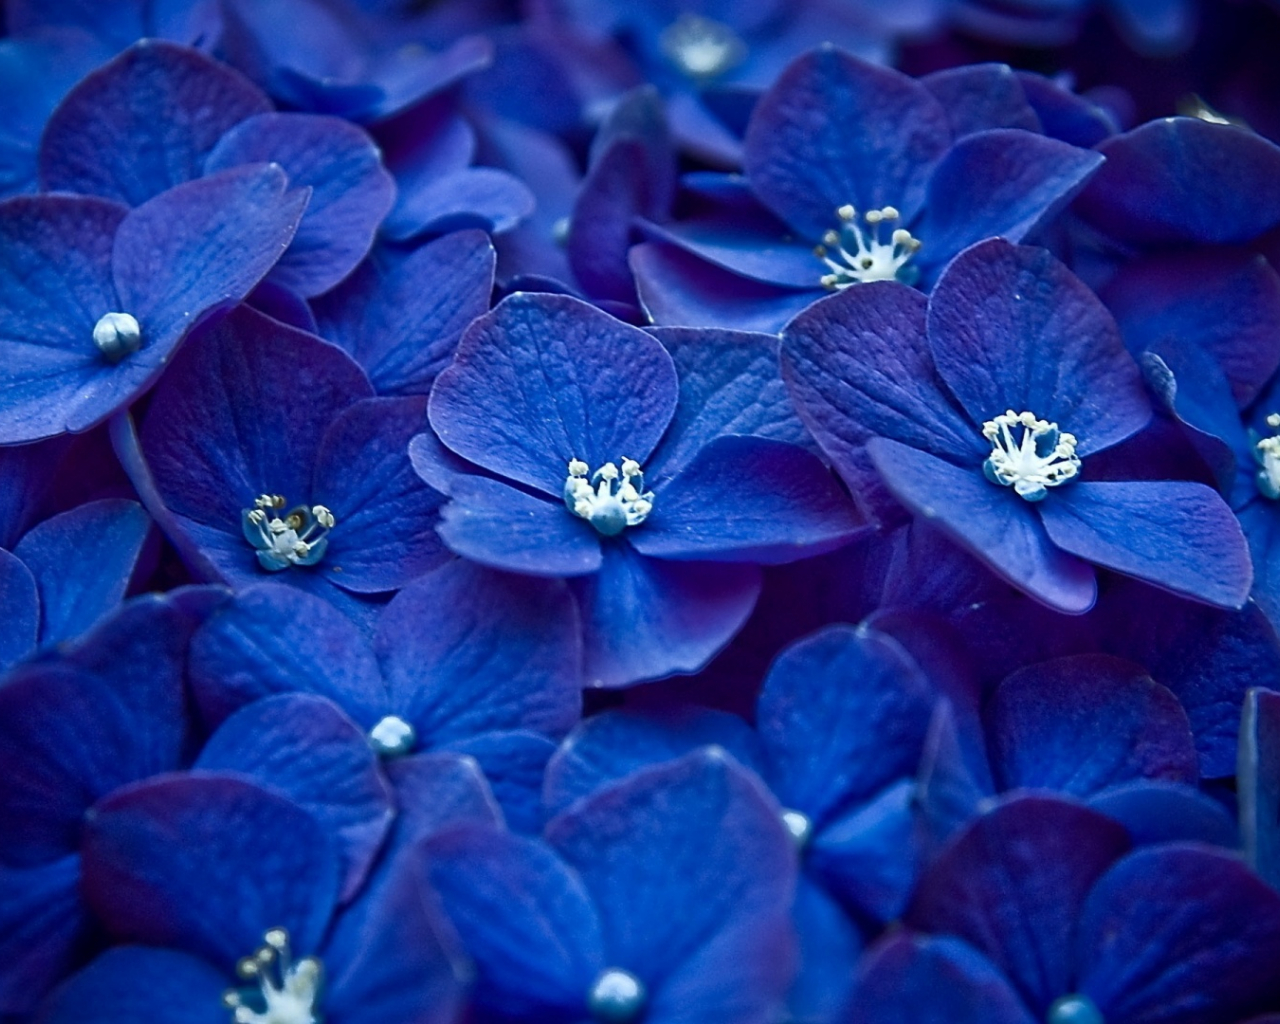 Free Download Blue Flowers Hd Wallpapers For Tumblr Hd